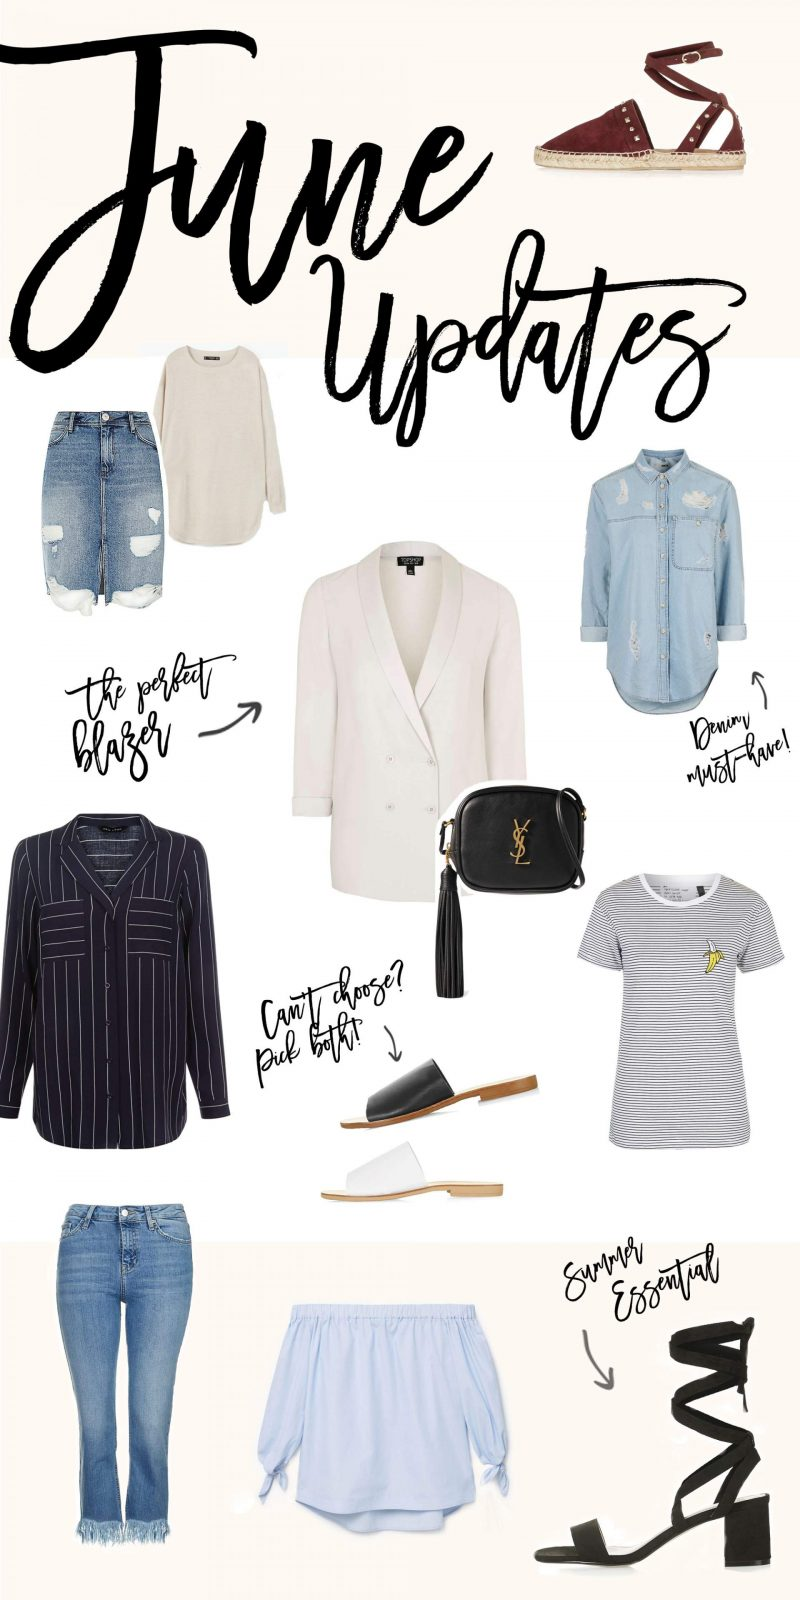 The June Wishlist